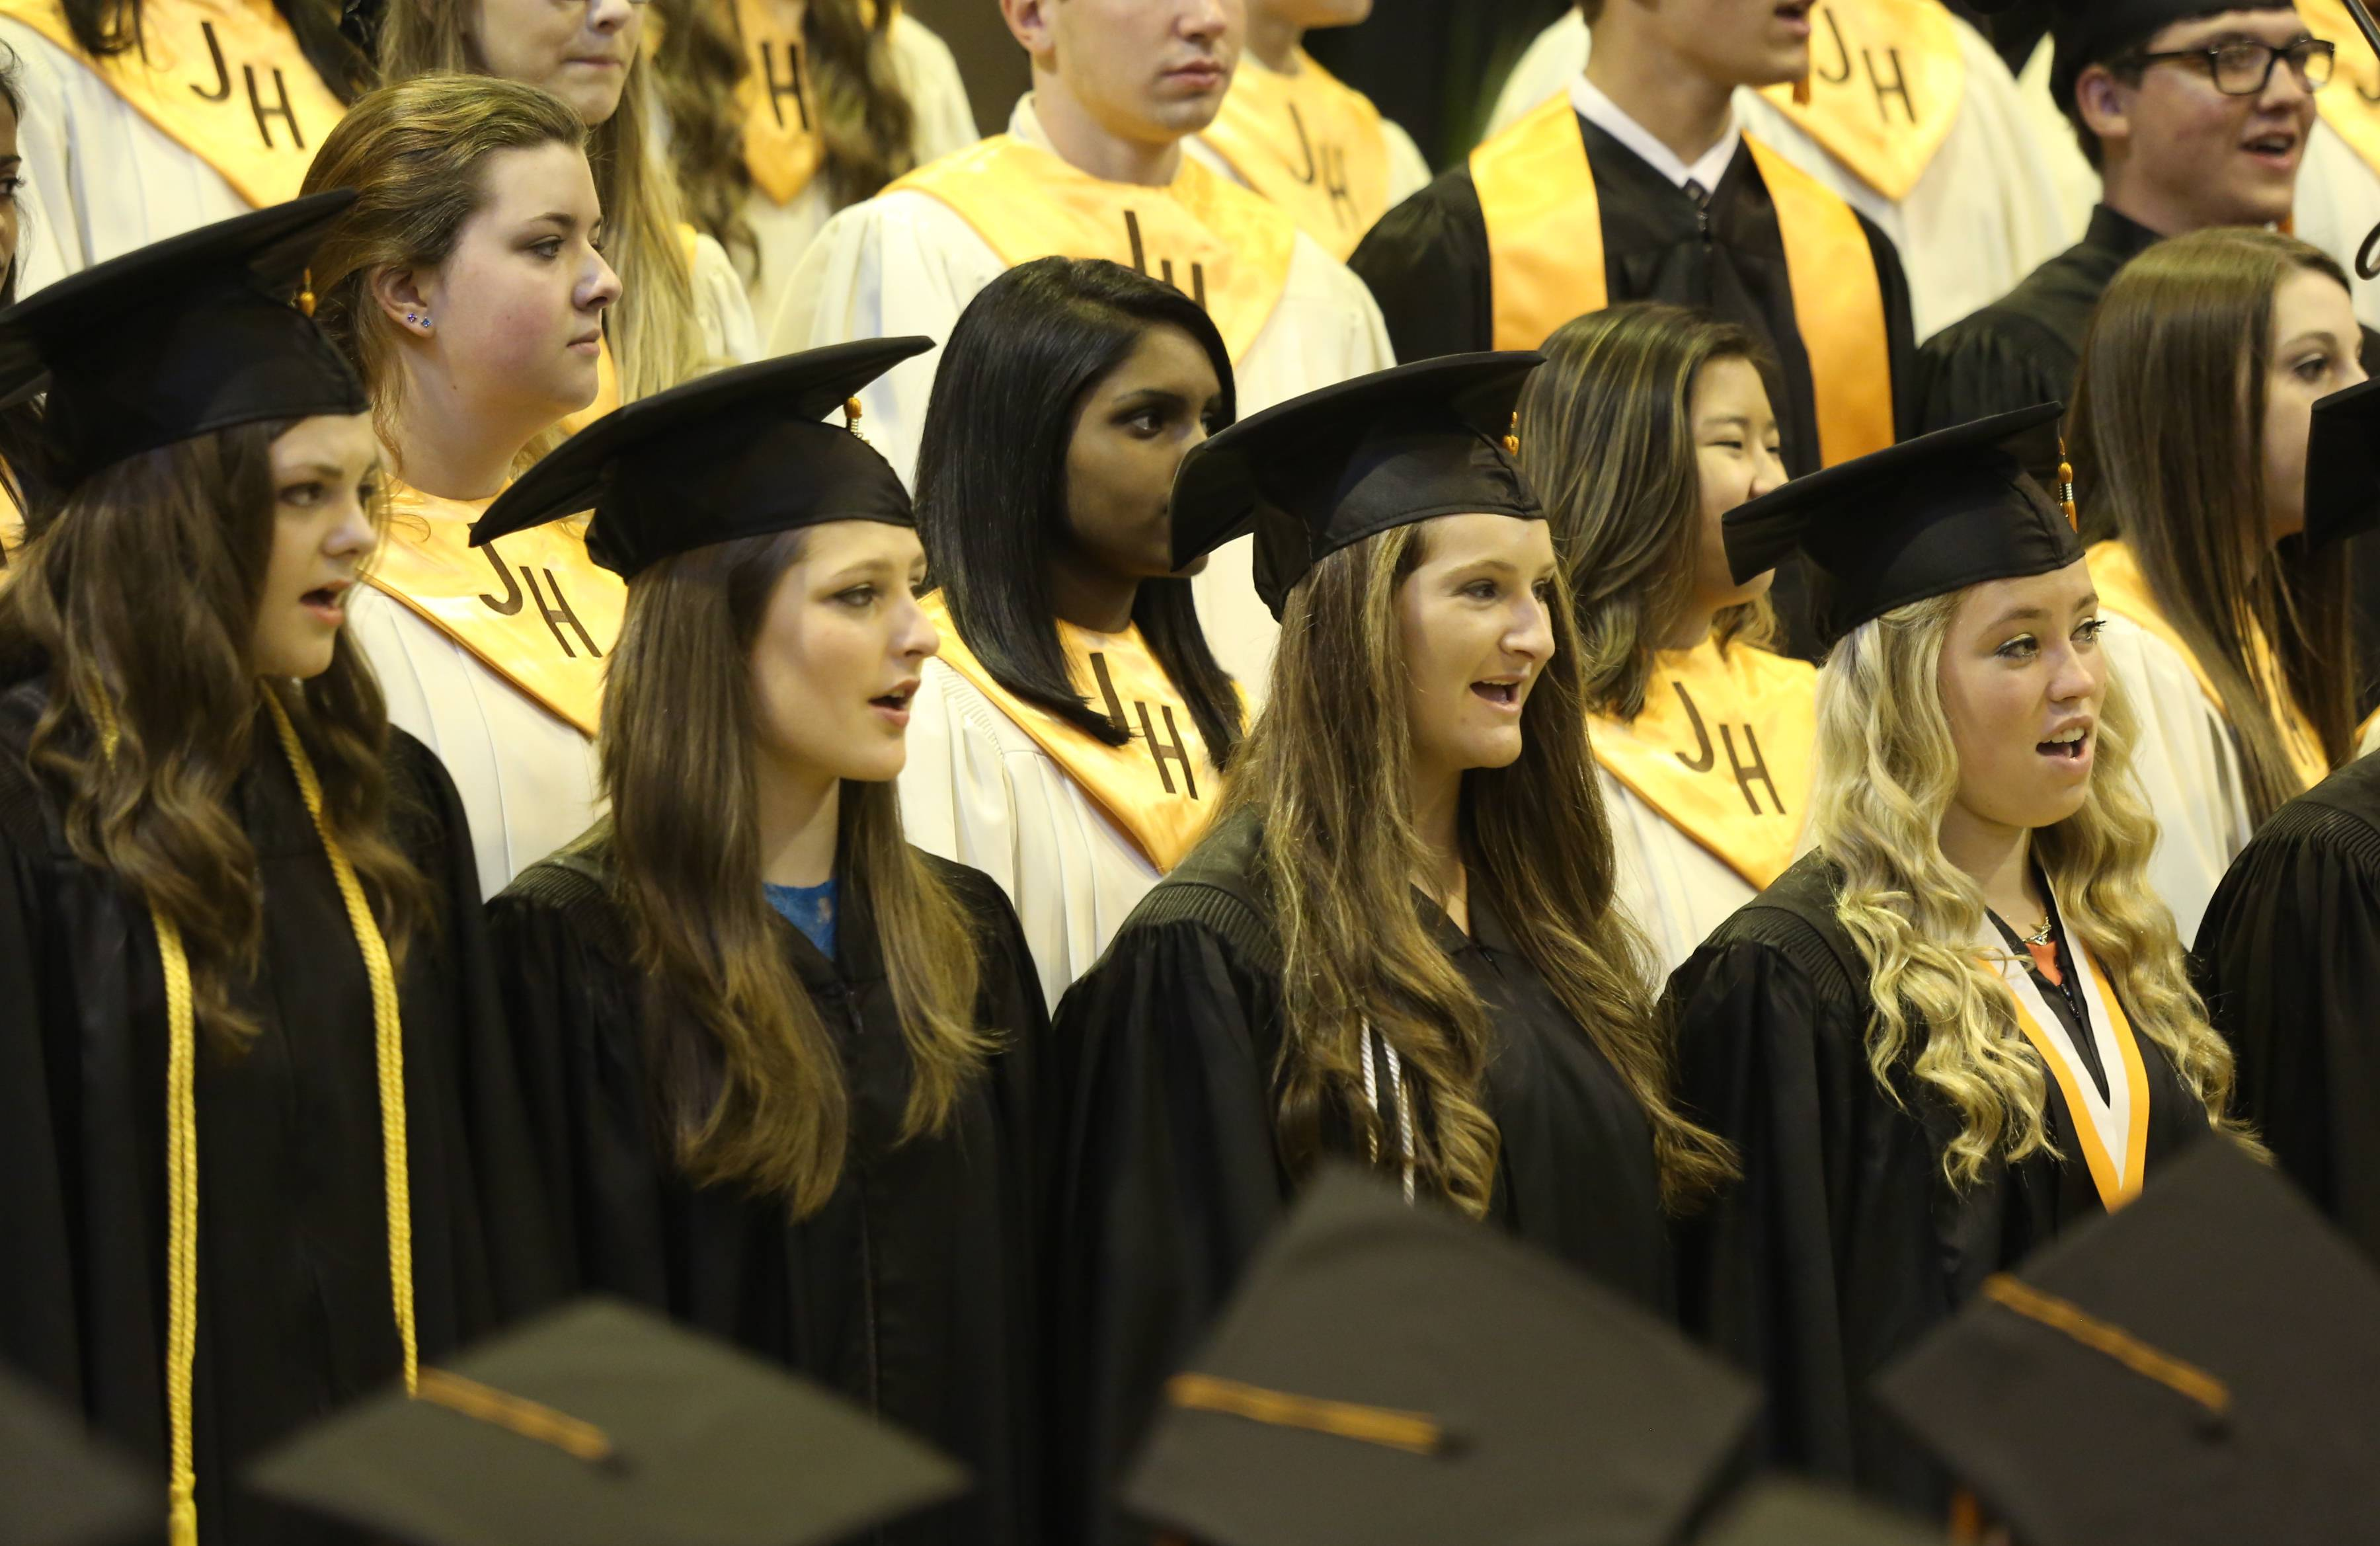 Photos from the Hersey High School graduation on Sunday, June 1, at the school.